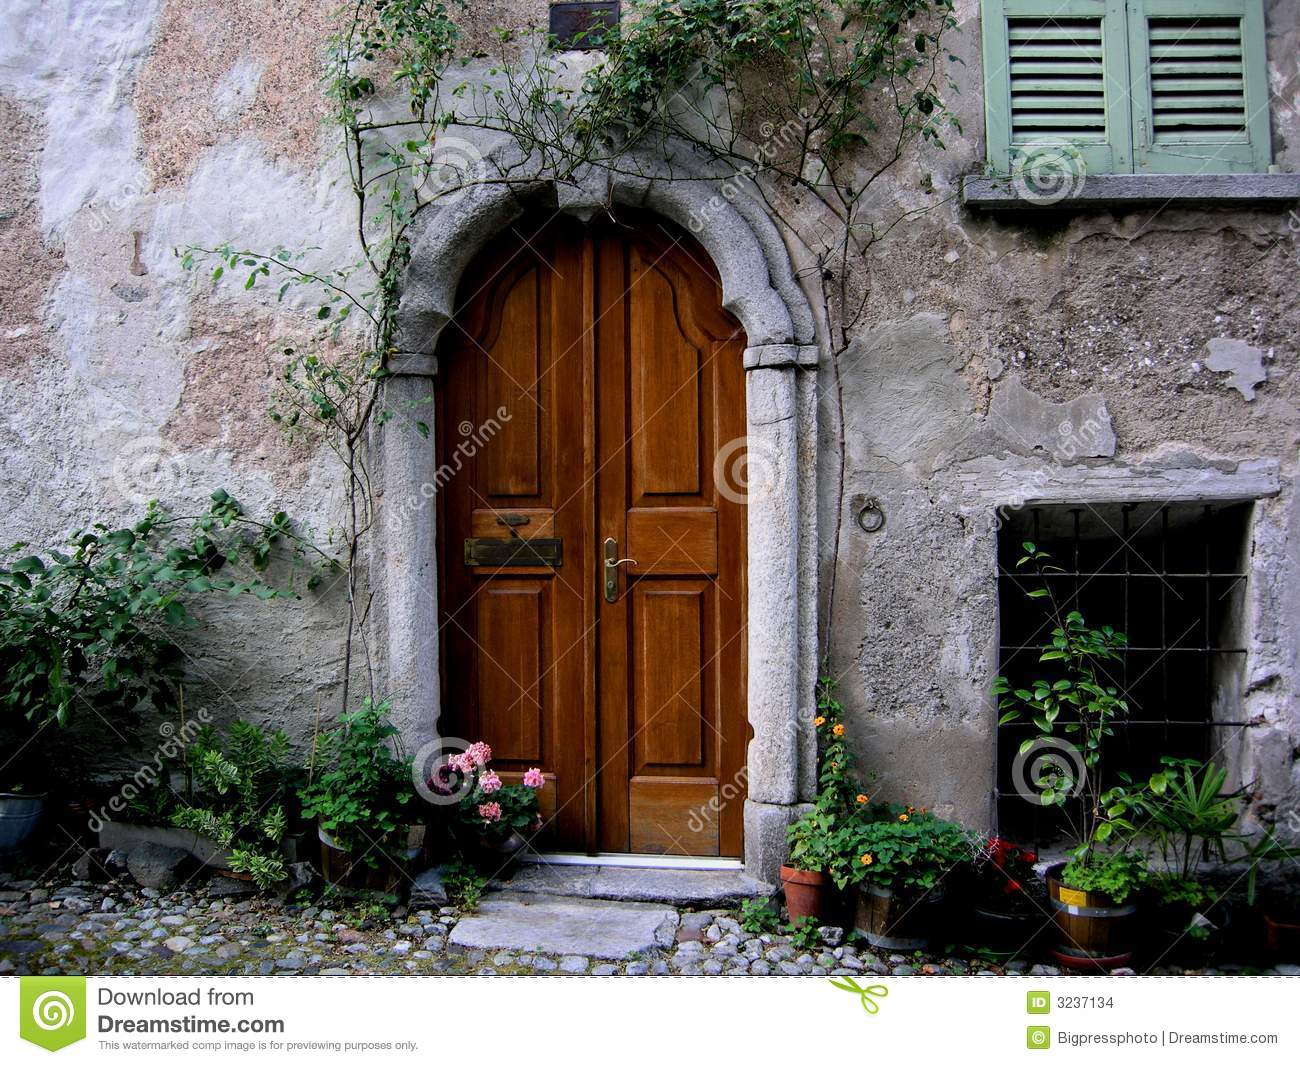 1065 #693611 Arched Entrance Door Tuscany Italy Stock Images Image: 3237134 save image Arched Front Doors For Homes 44971300